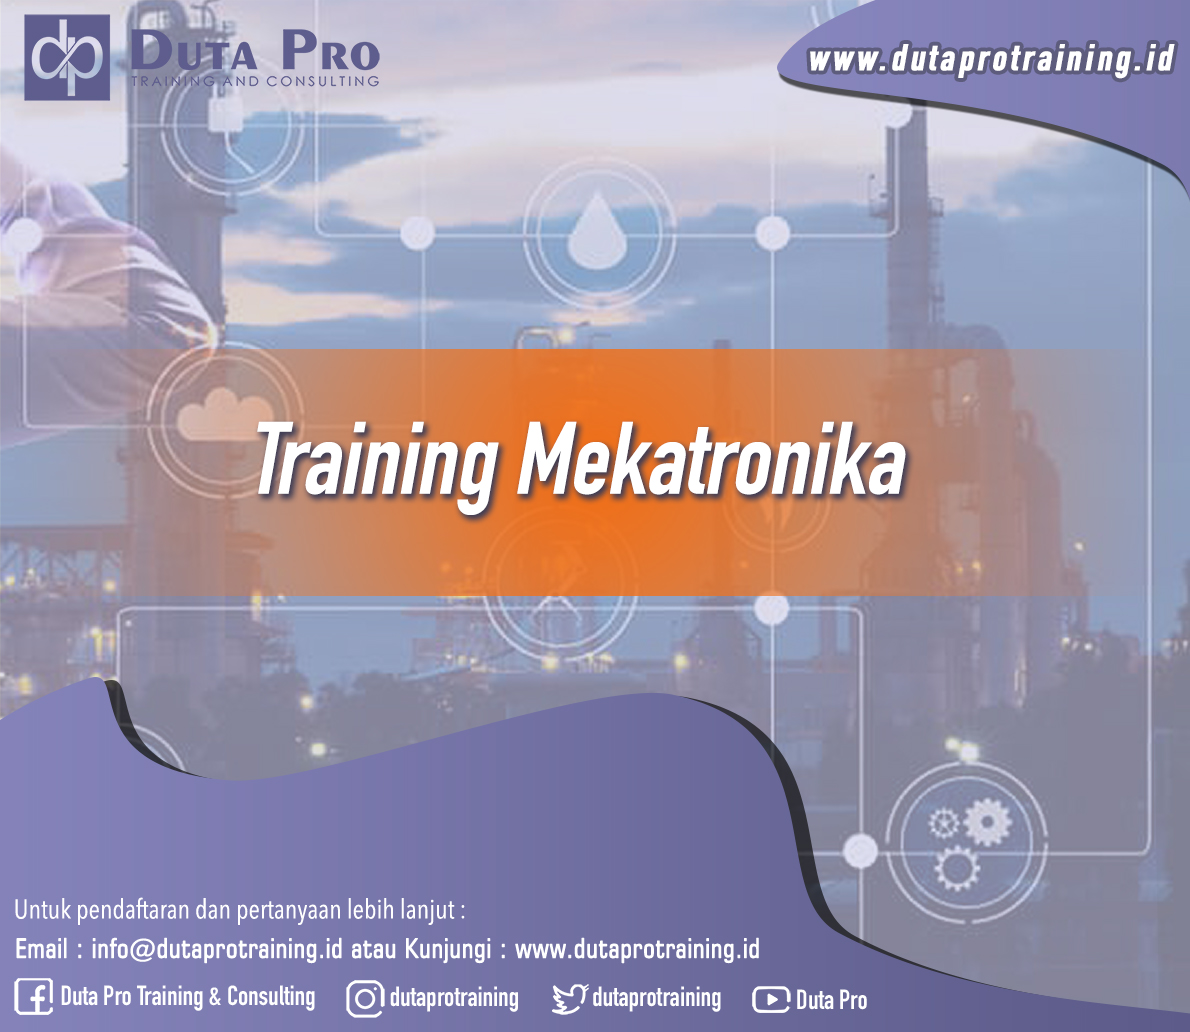 Training Mekatronika